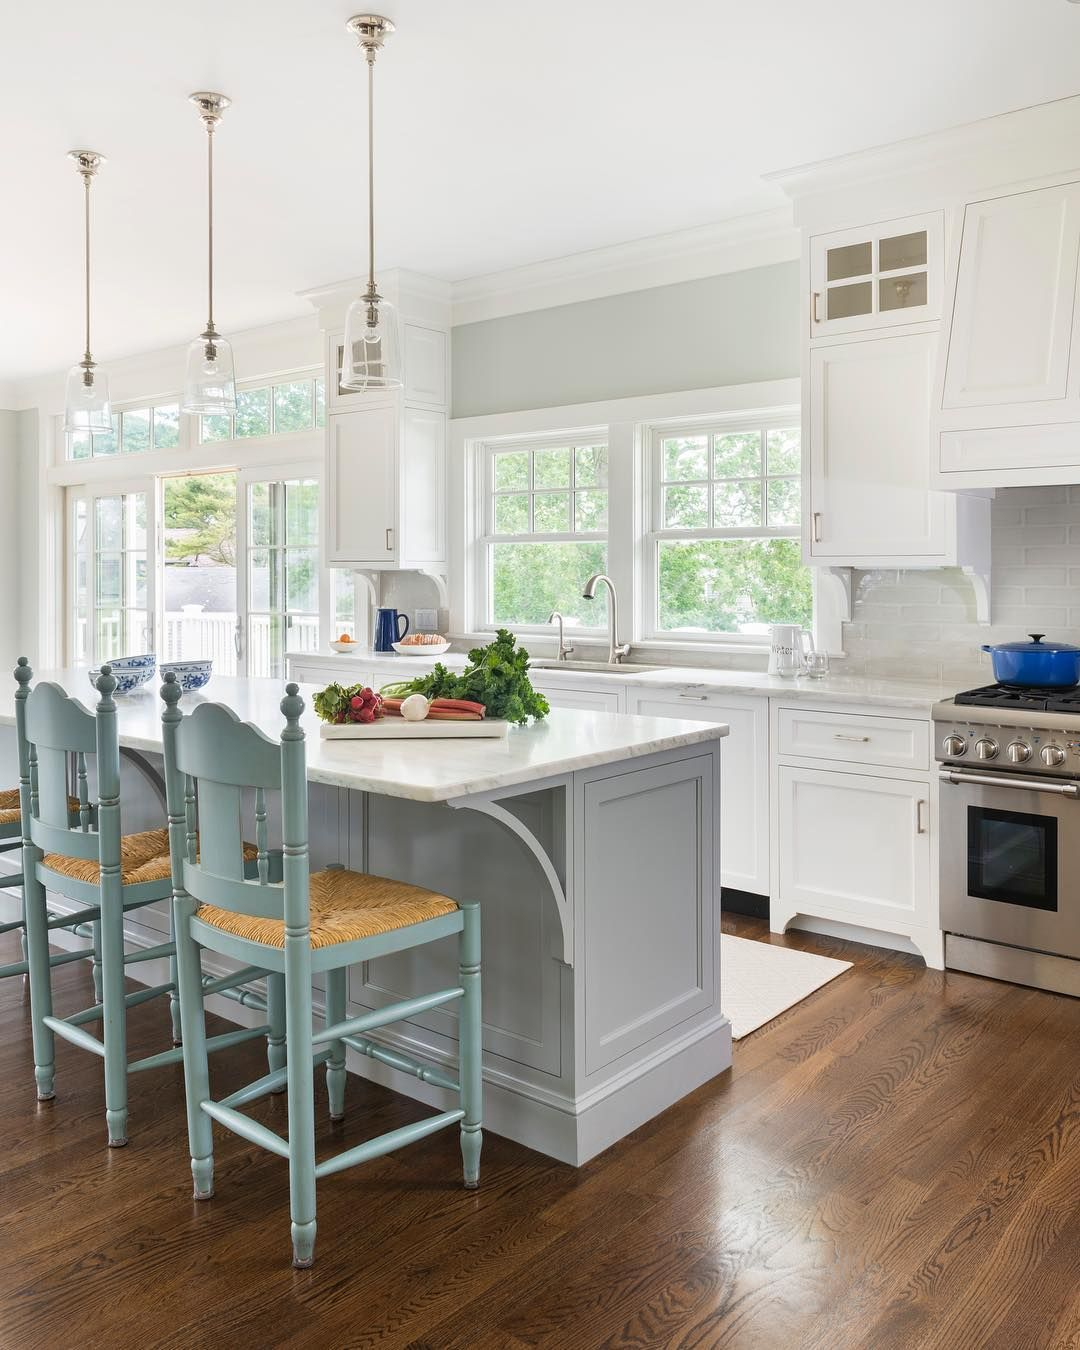 17 Coastal Kitchens Decor Ideas For A Beach Or Summer Home In 2020 Gorgeous White Kitchen Coastal Kitchen Decor White Kitchen Island